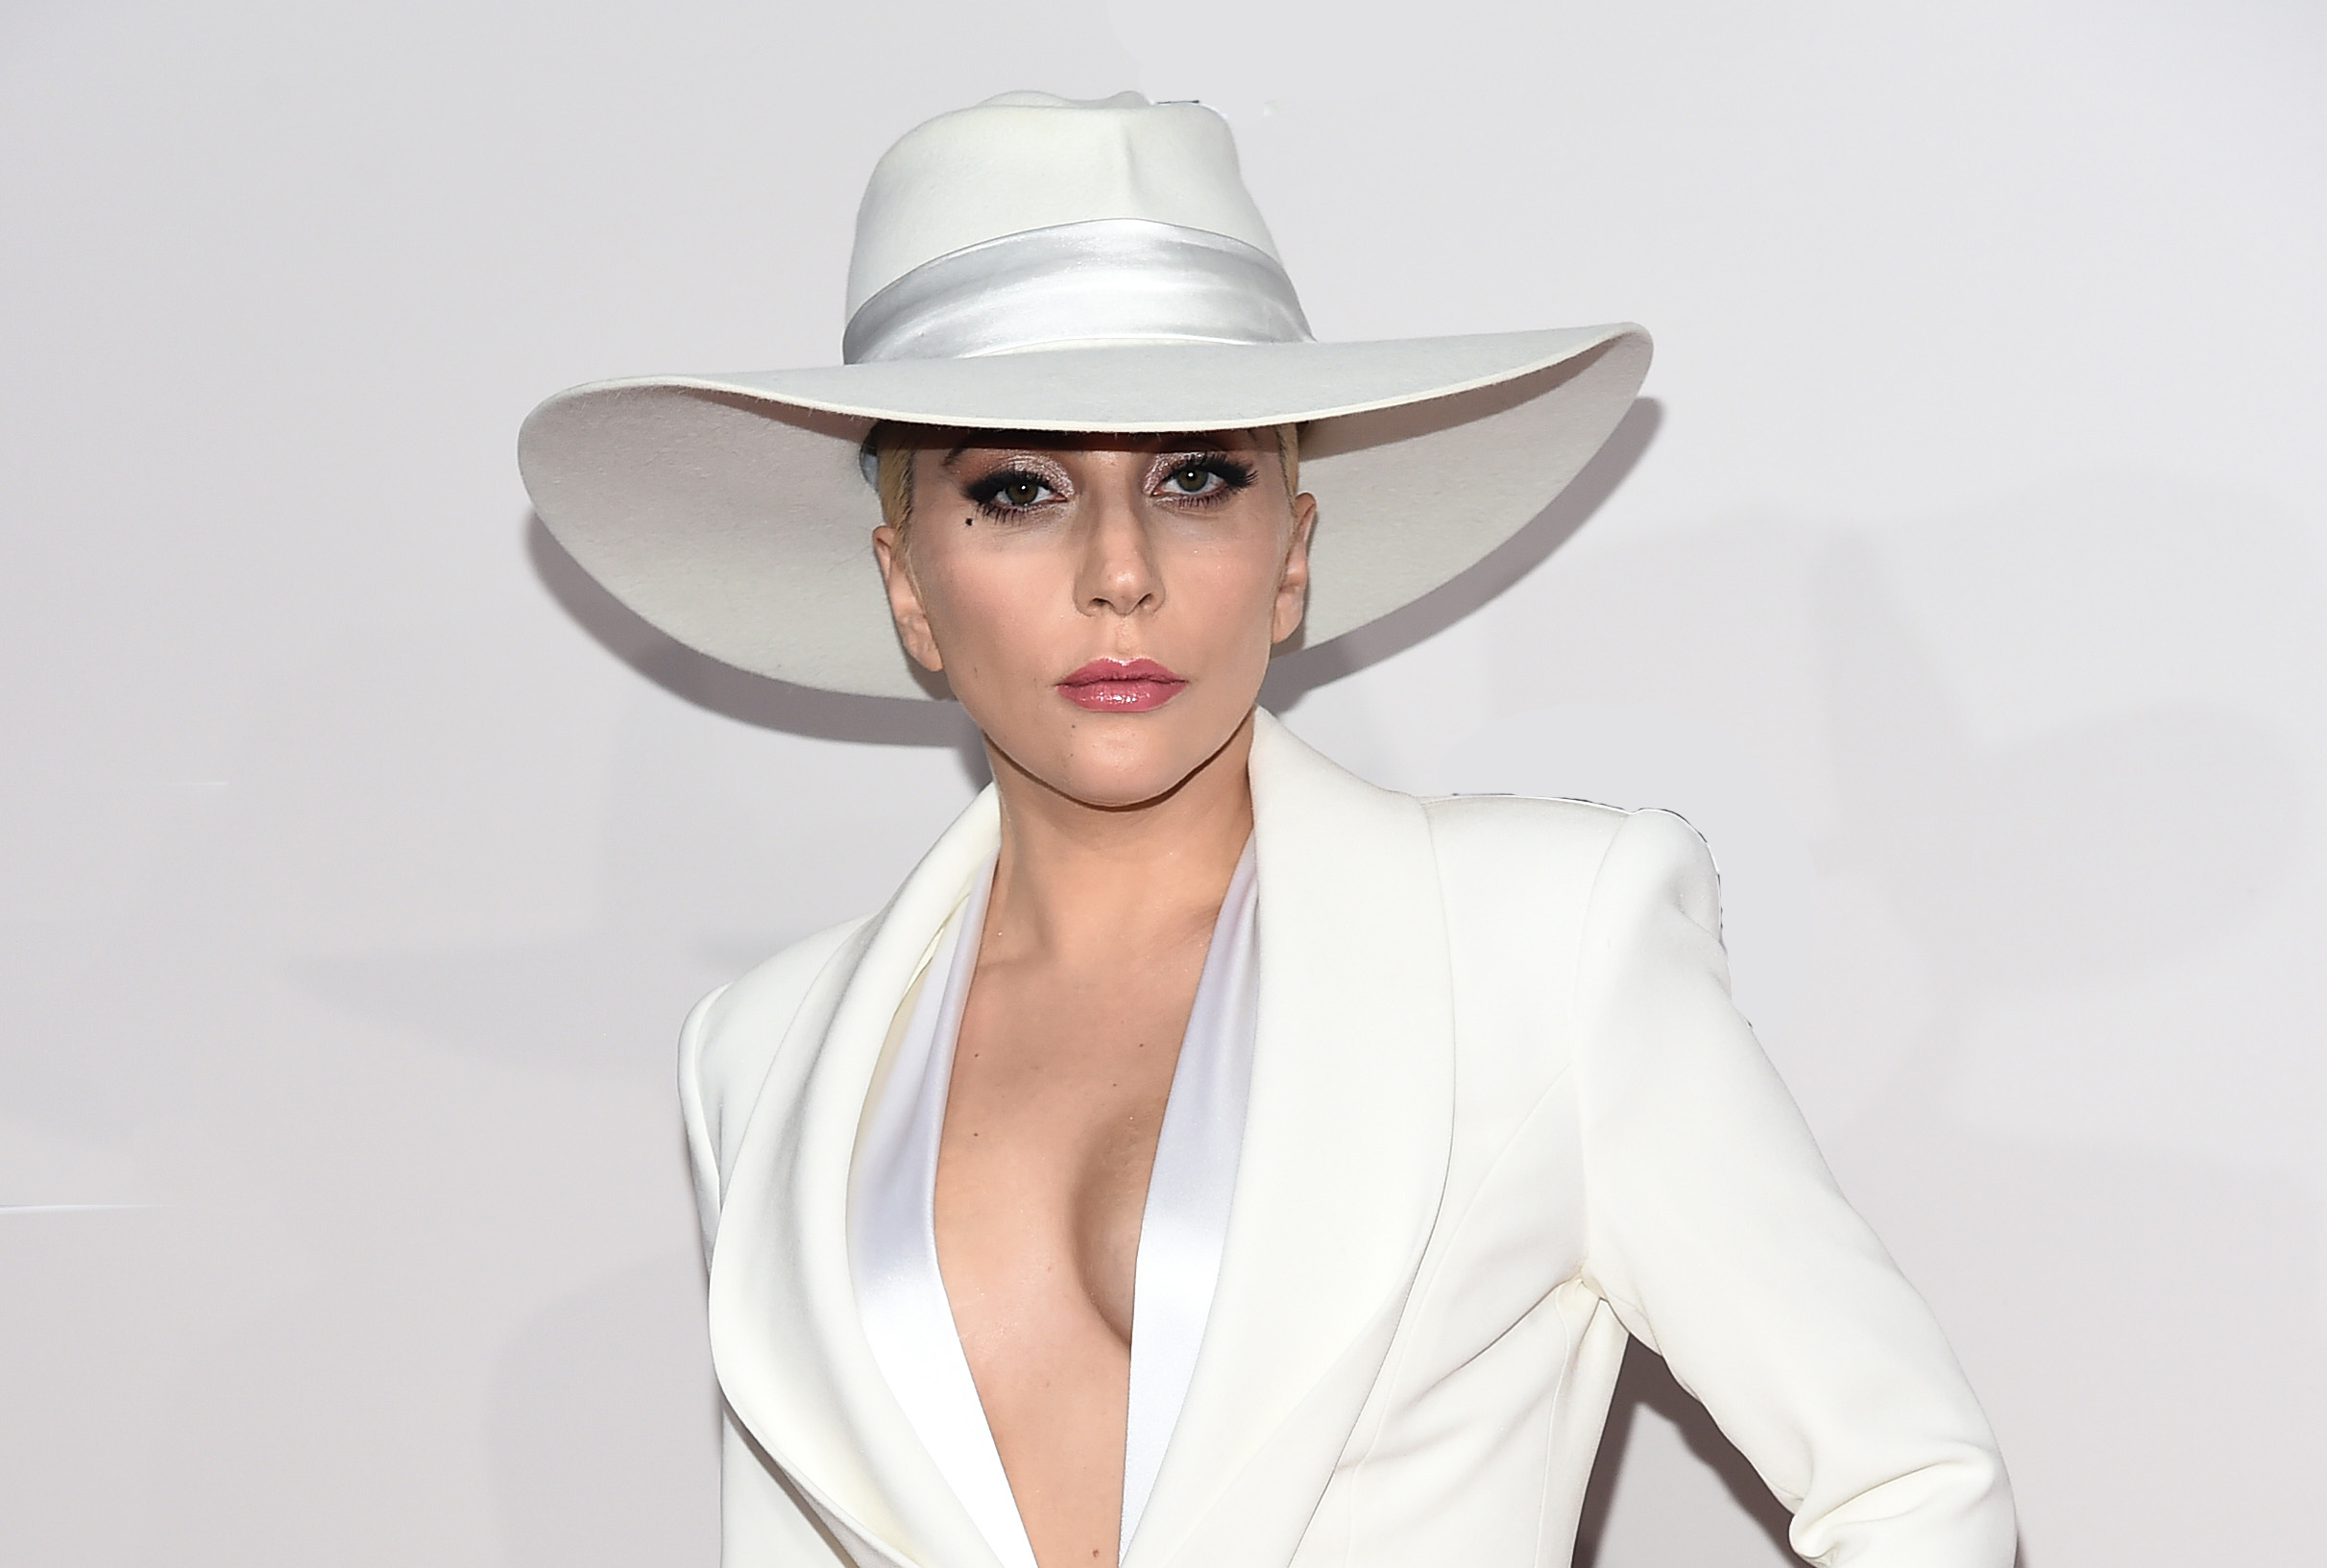 Lady Gaga PTSD celebrity quotes on mental health